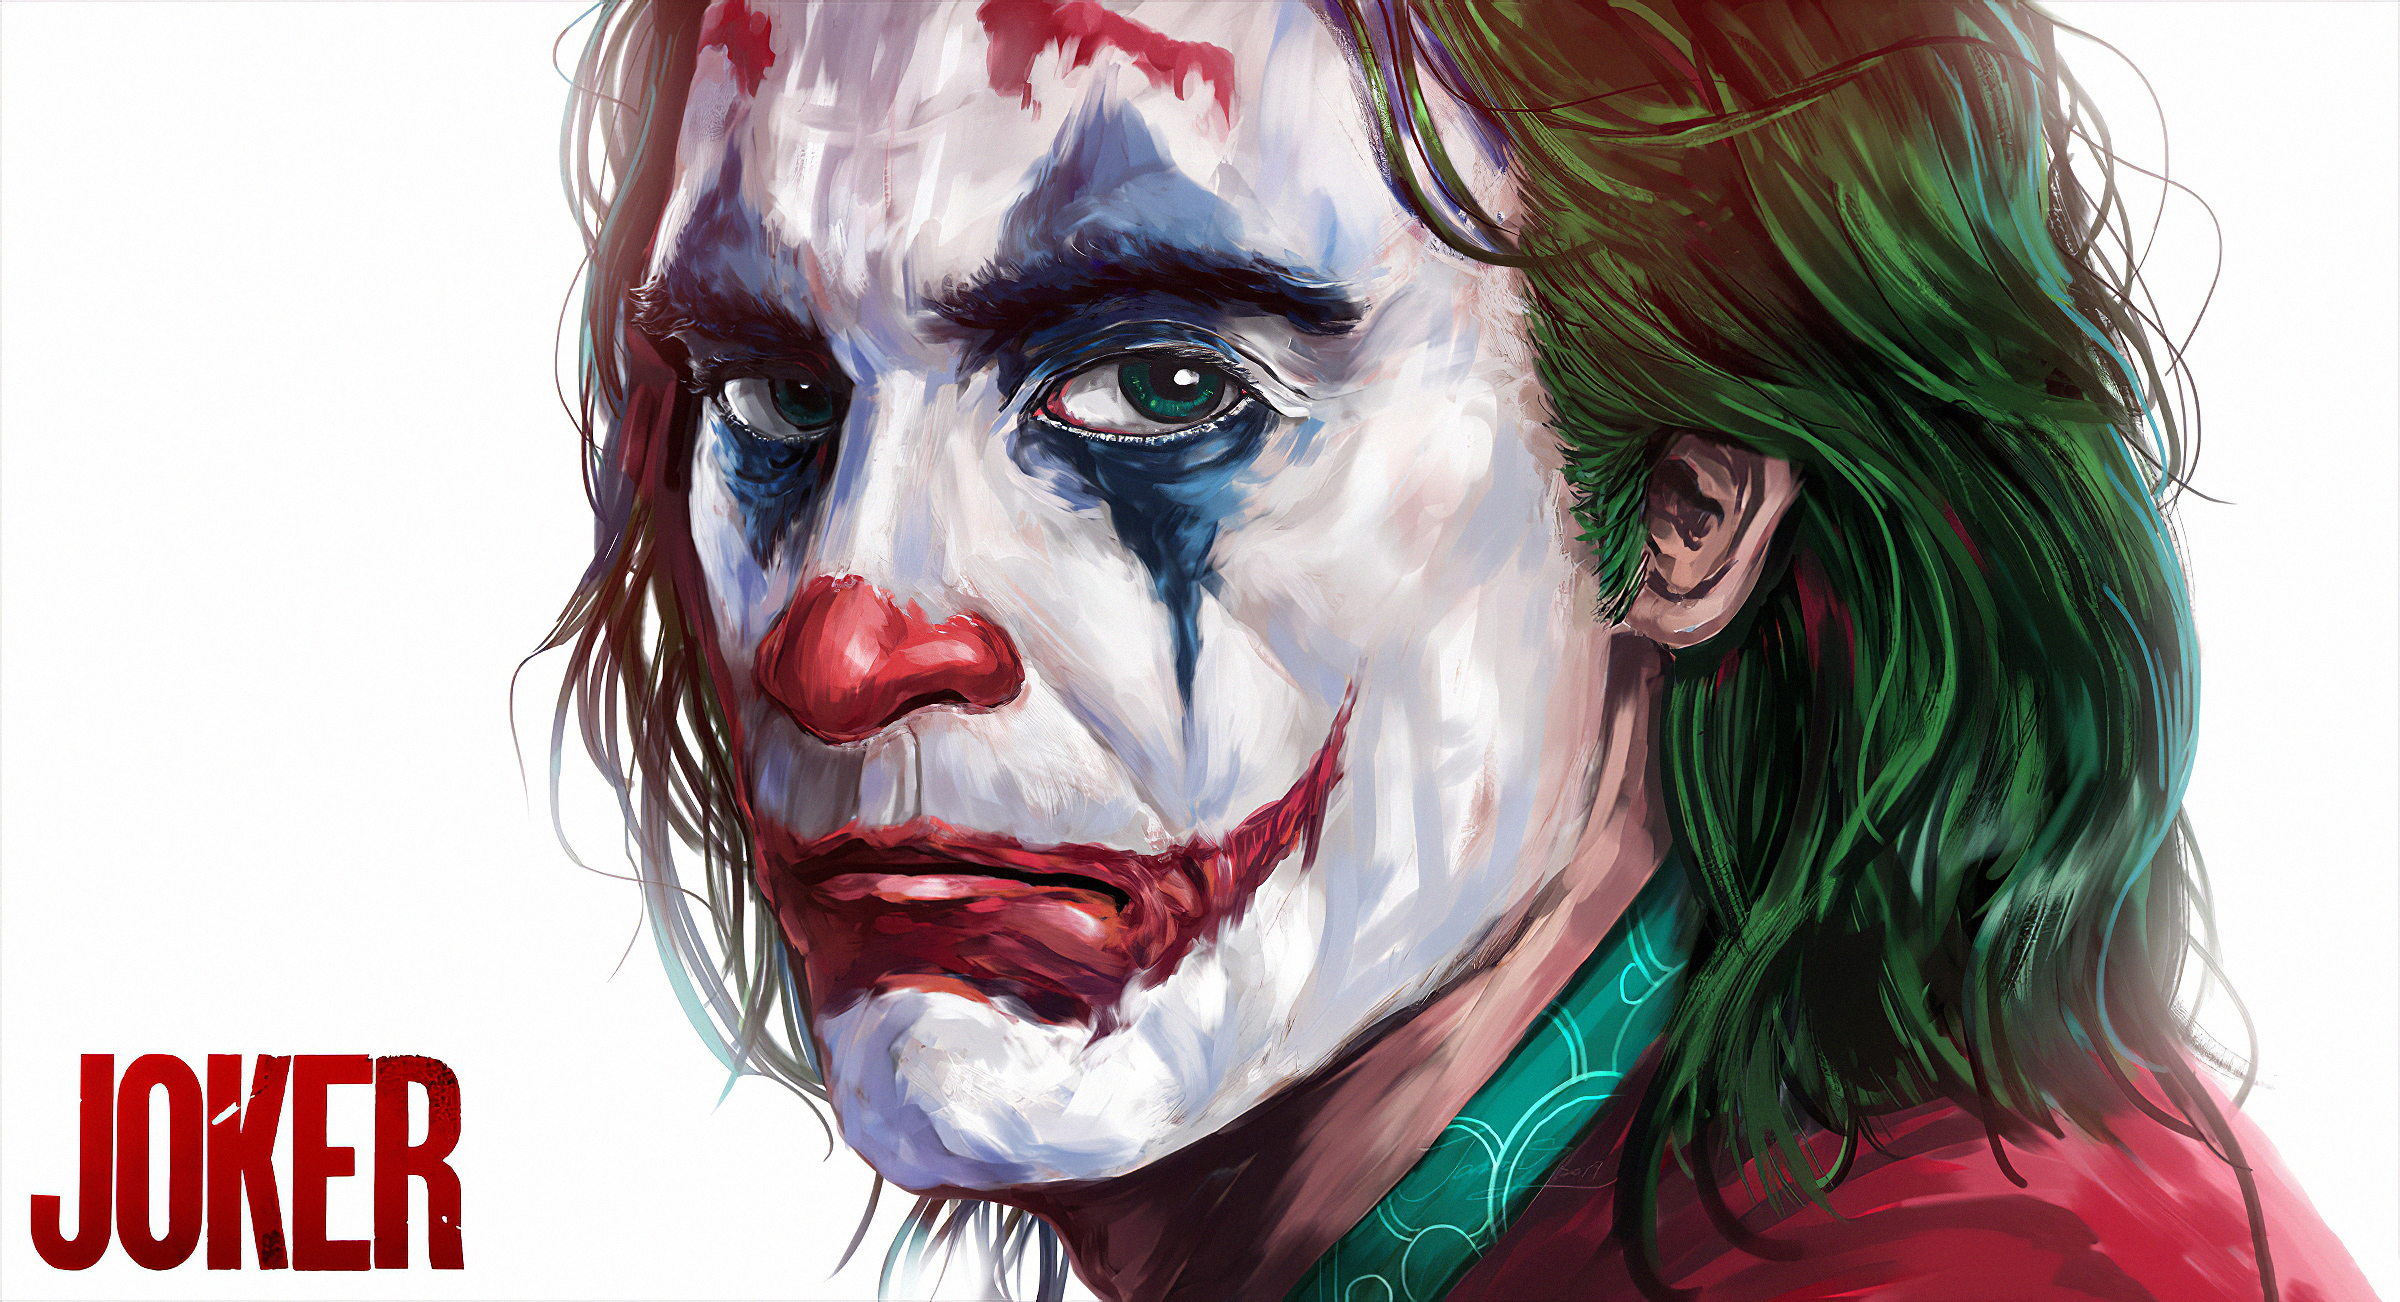 Joker Sad Face Hd Superheroes 4k Wallpapers Images Backgrounds Photos And Pictures